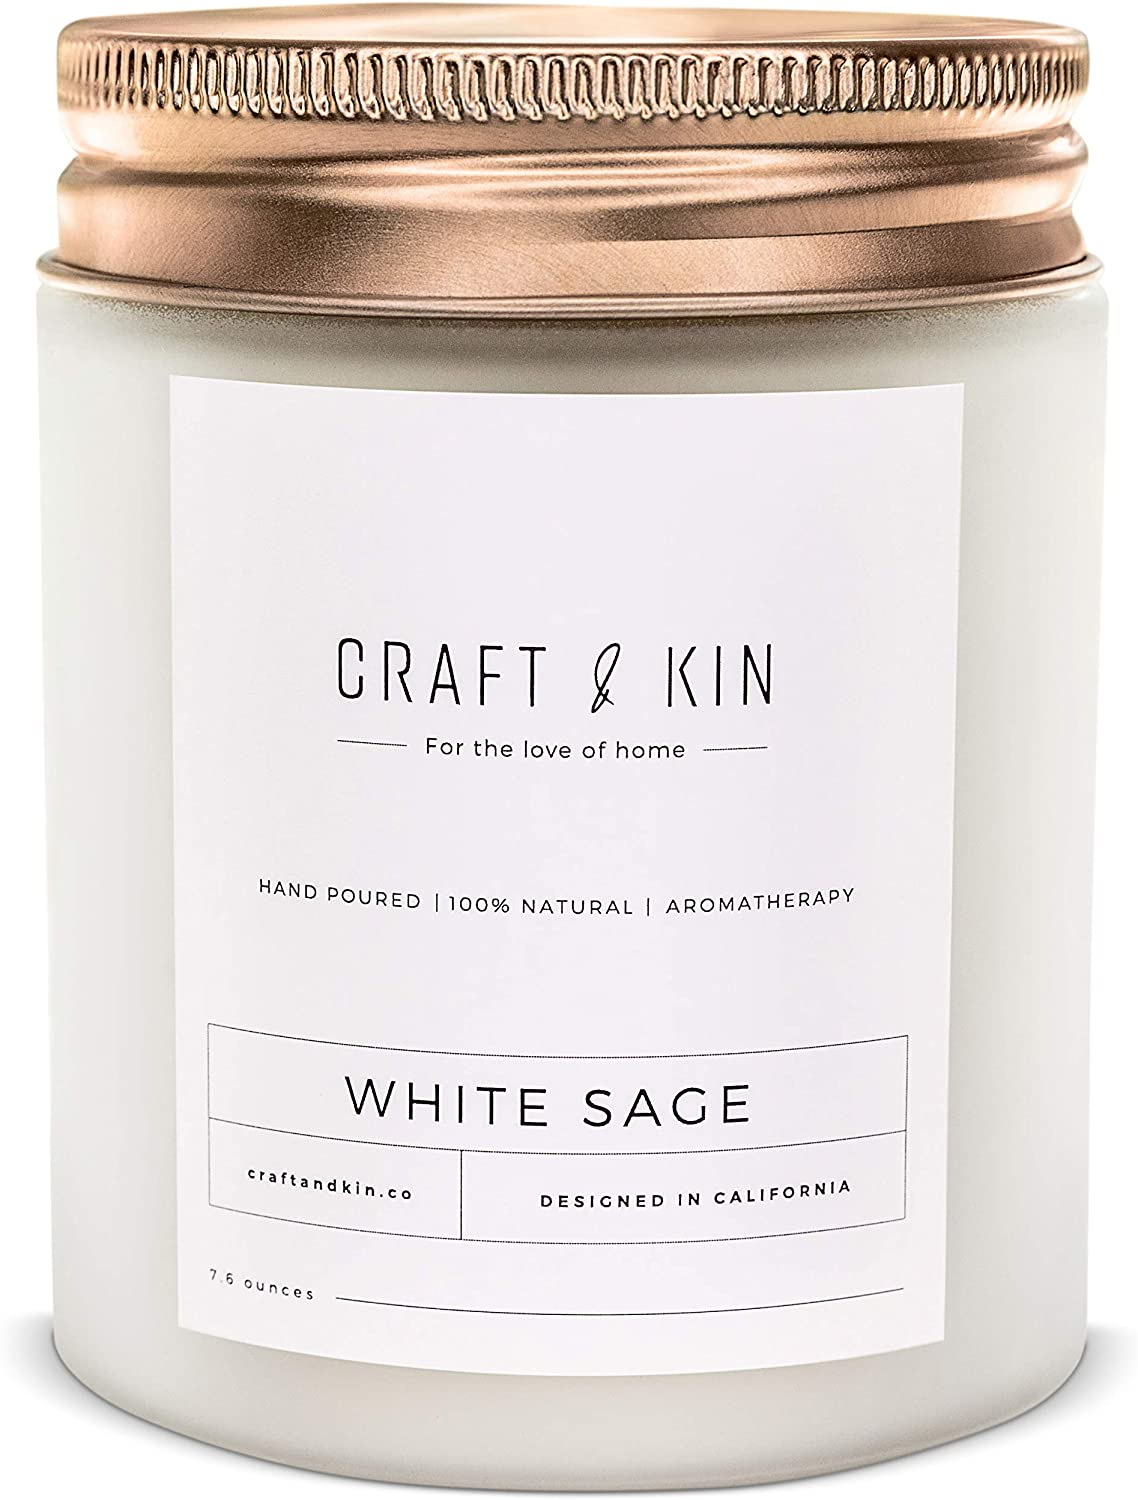 White Sage Candle   Wood Wicked Candles   Sage Candles for Cleansing House   8 oz 45 Hour Burn, Scented Candles for Home Scented Candle, Soy Candles Scented, Spring Candles, Aromatherapy Candles